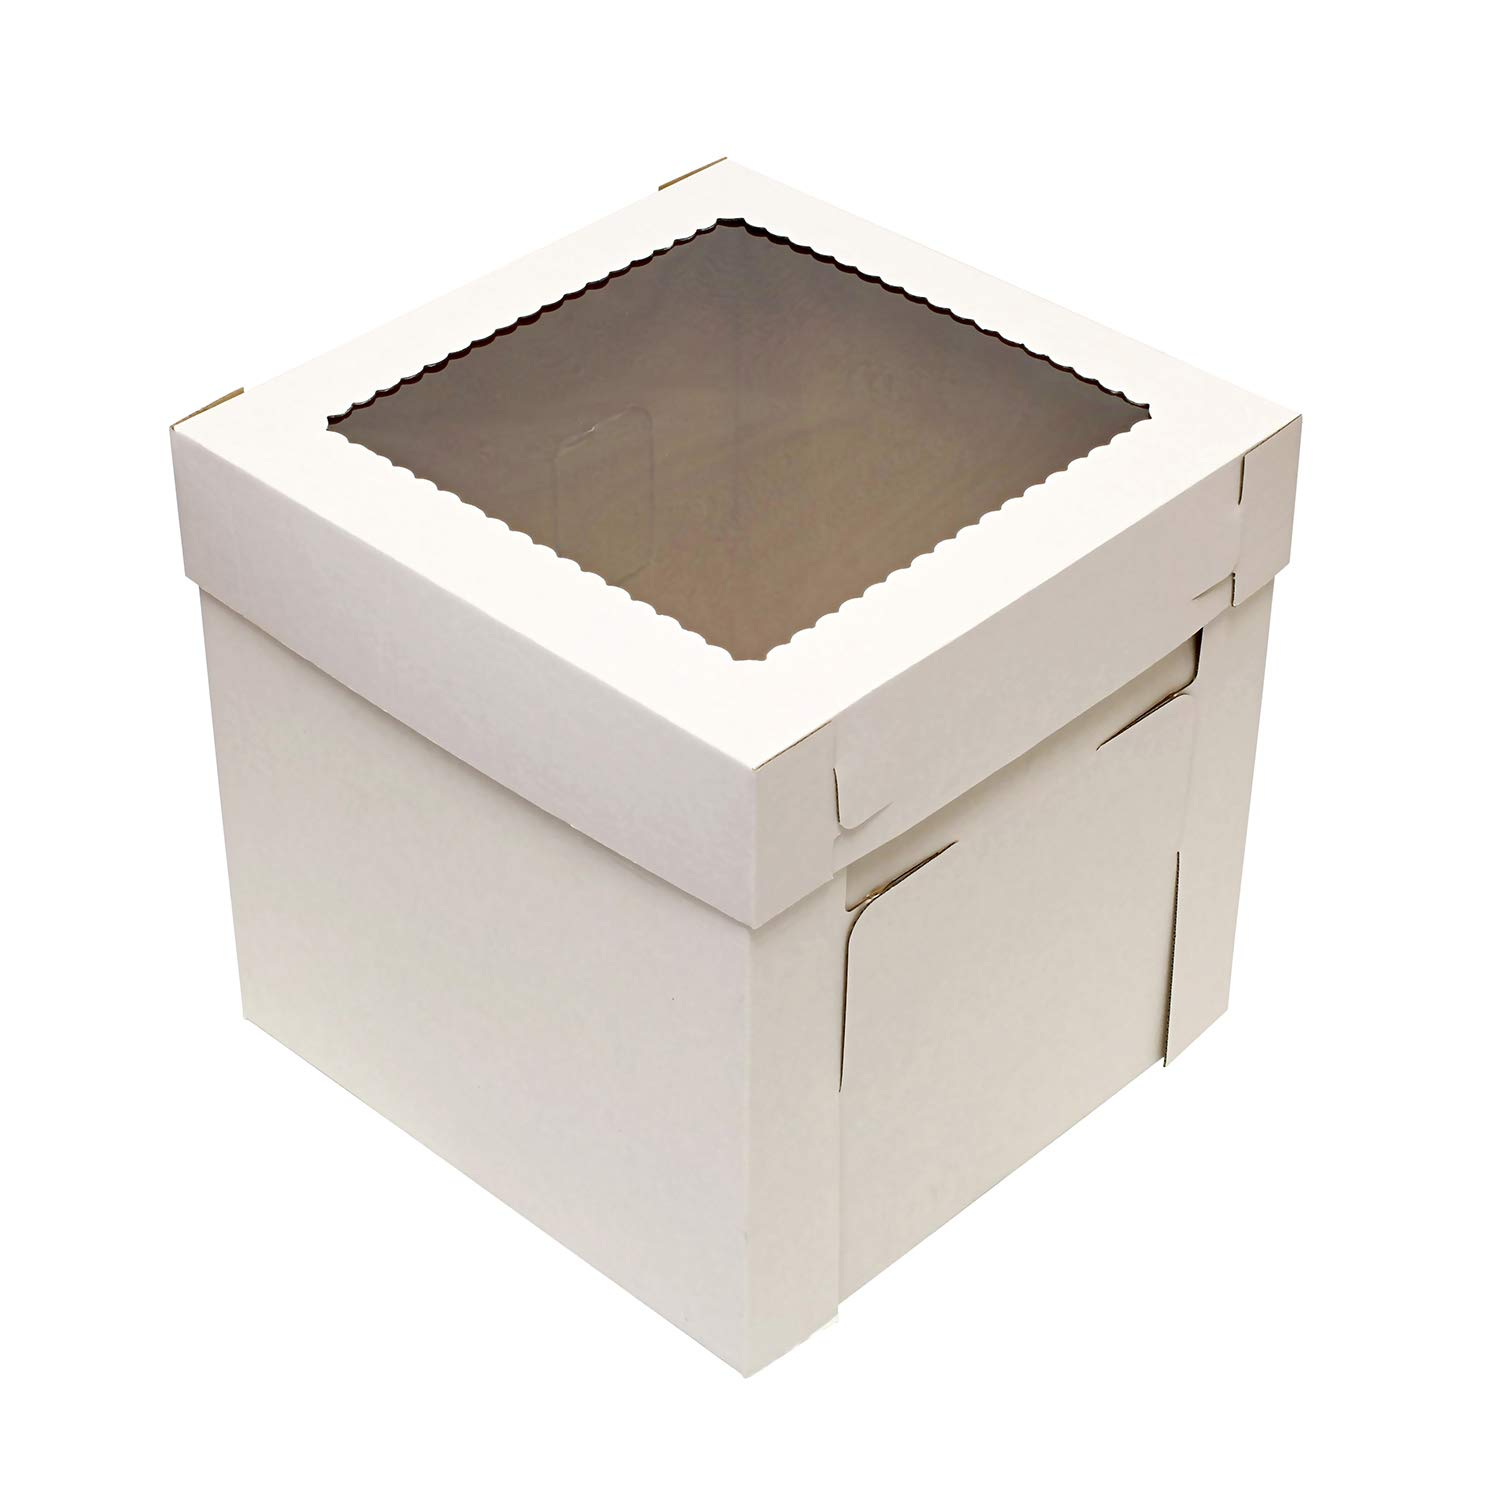 SpecialT Cake Boxes with Window 25pk 8'' x 8'' x 8'' Inch White Bakery Boxes, Disposable Cake Containers, Dessert Boxes